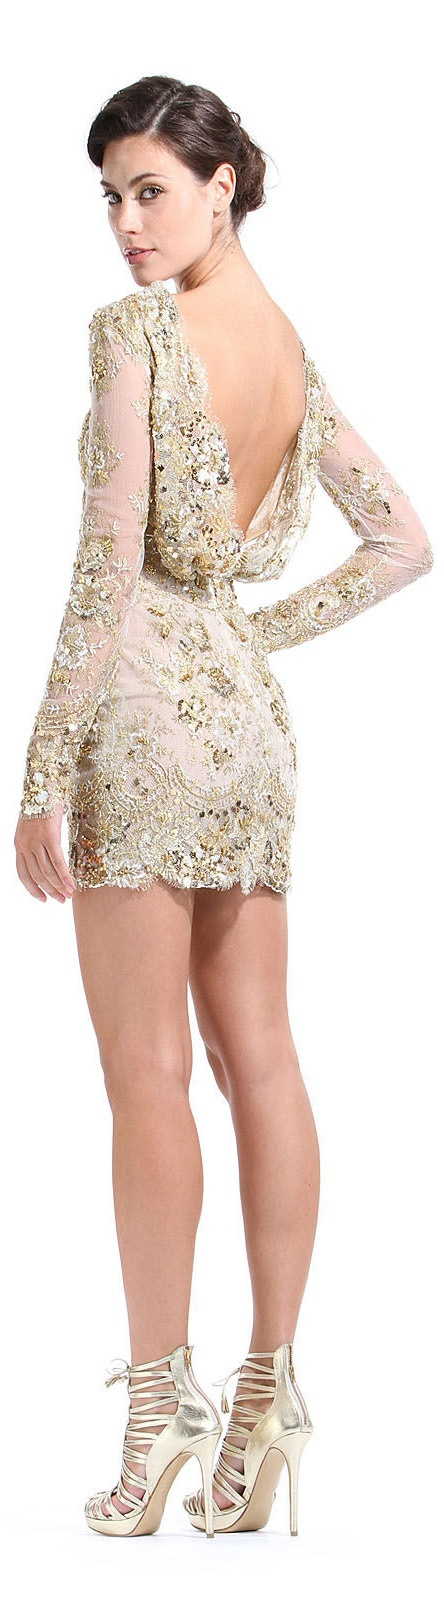 Zuhair Murad :: Ready to Wear :: Pre-Fall 2012   http://en.flip-zone.com/index.php?page=recherche=Zuhair+Murad=0=0 More of this collection on Fashion Chic, Fashion Black & Fashion Runway: Fashion, Murad Pre Fall, Zuhairmurad, Zuhair Murad, Style, Dresses, Wedding Dress, For Fall 2012, Haute Couture